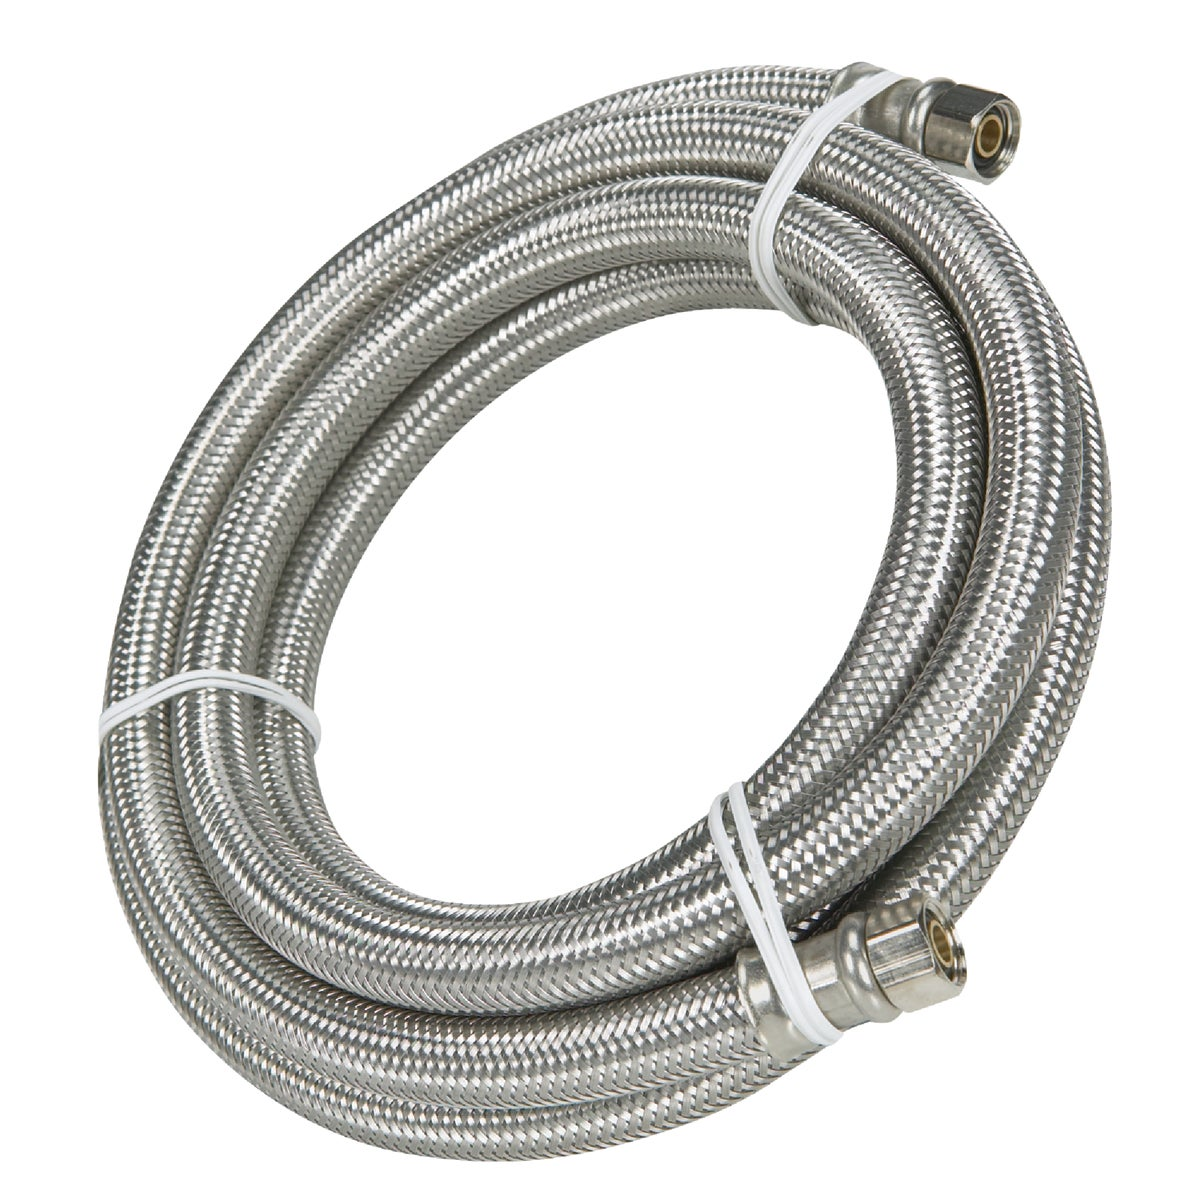 7' ICE MAKER CONNECTOR - 482080 by Watts Regulator Co